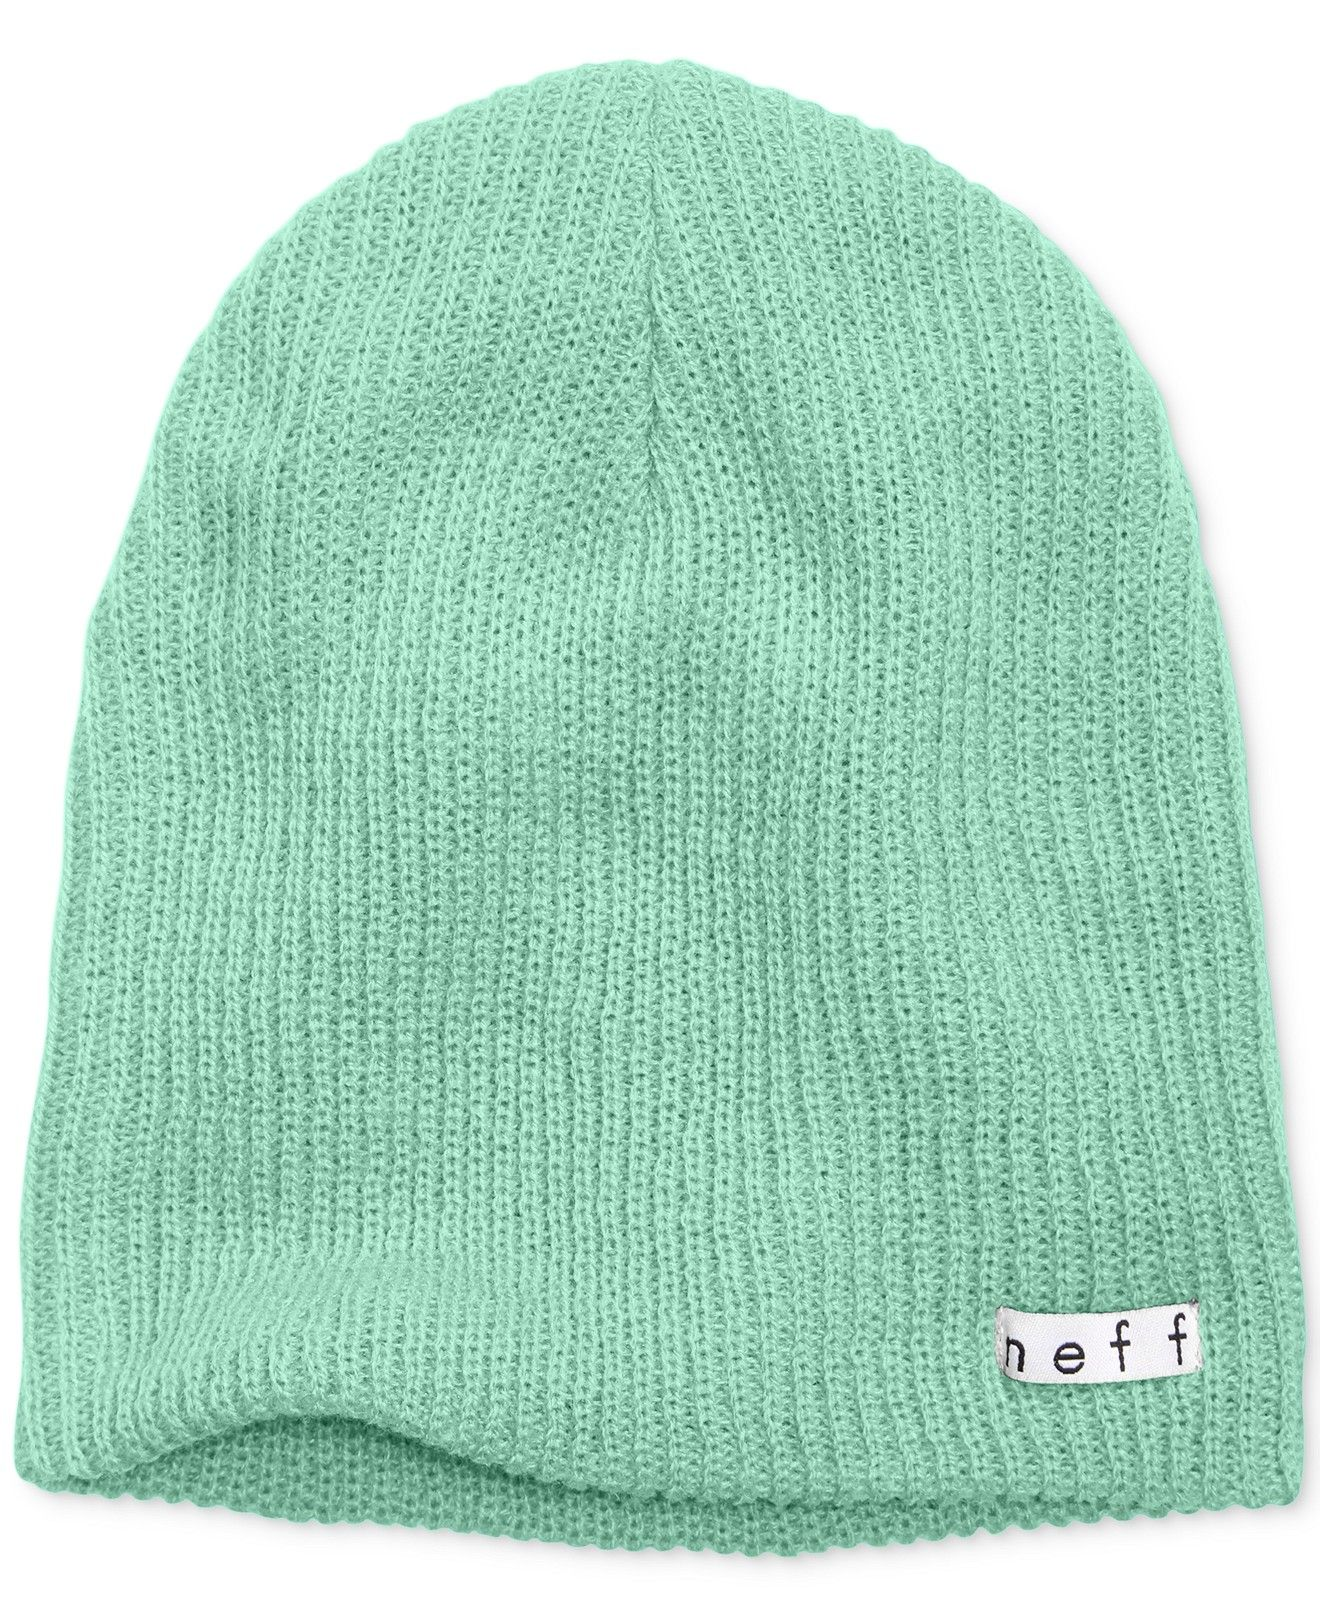 04371e3a721 Neff Daily Solid Beanie - Hats